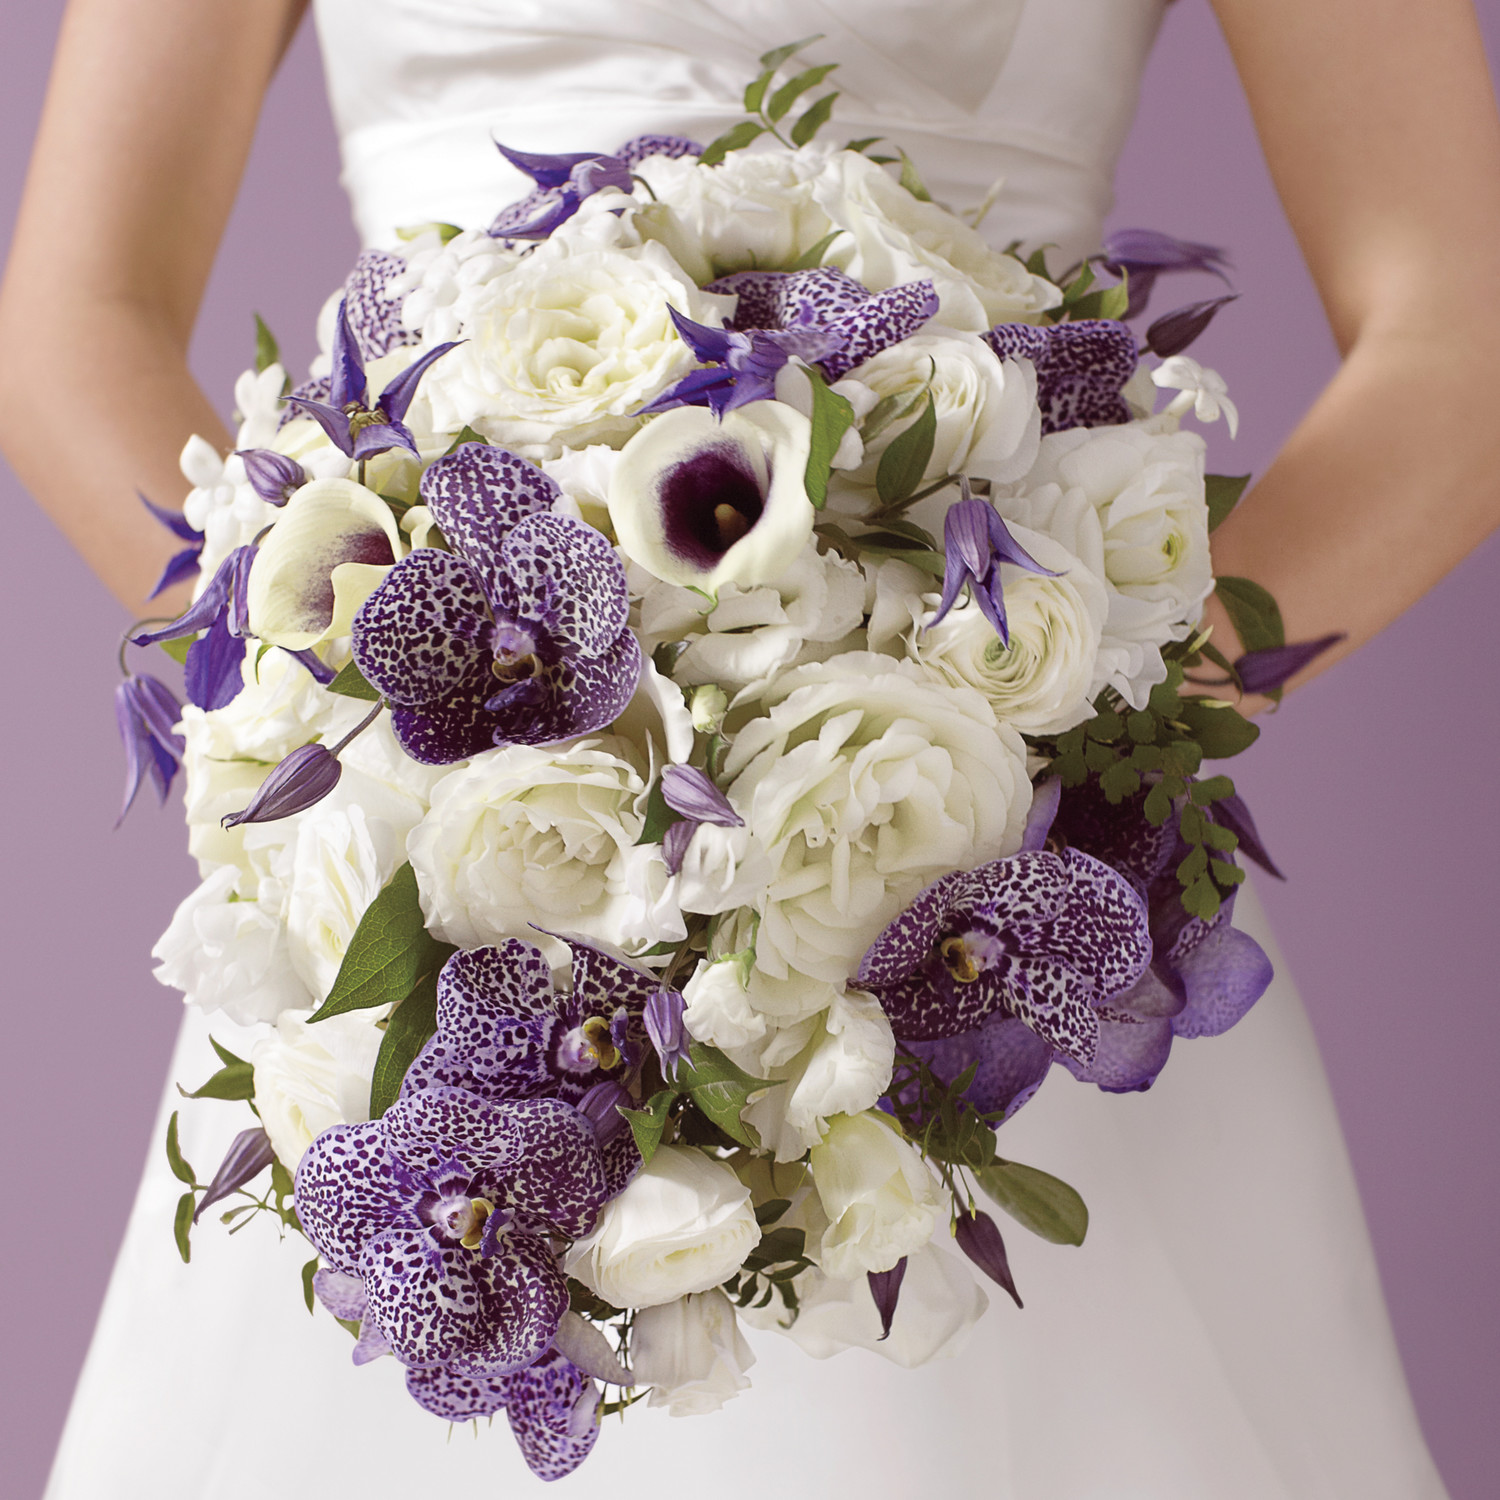 Flowers Wedding Ideas: Cool-Weather Wedding Flowers